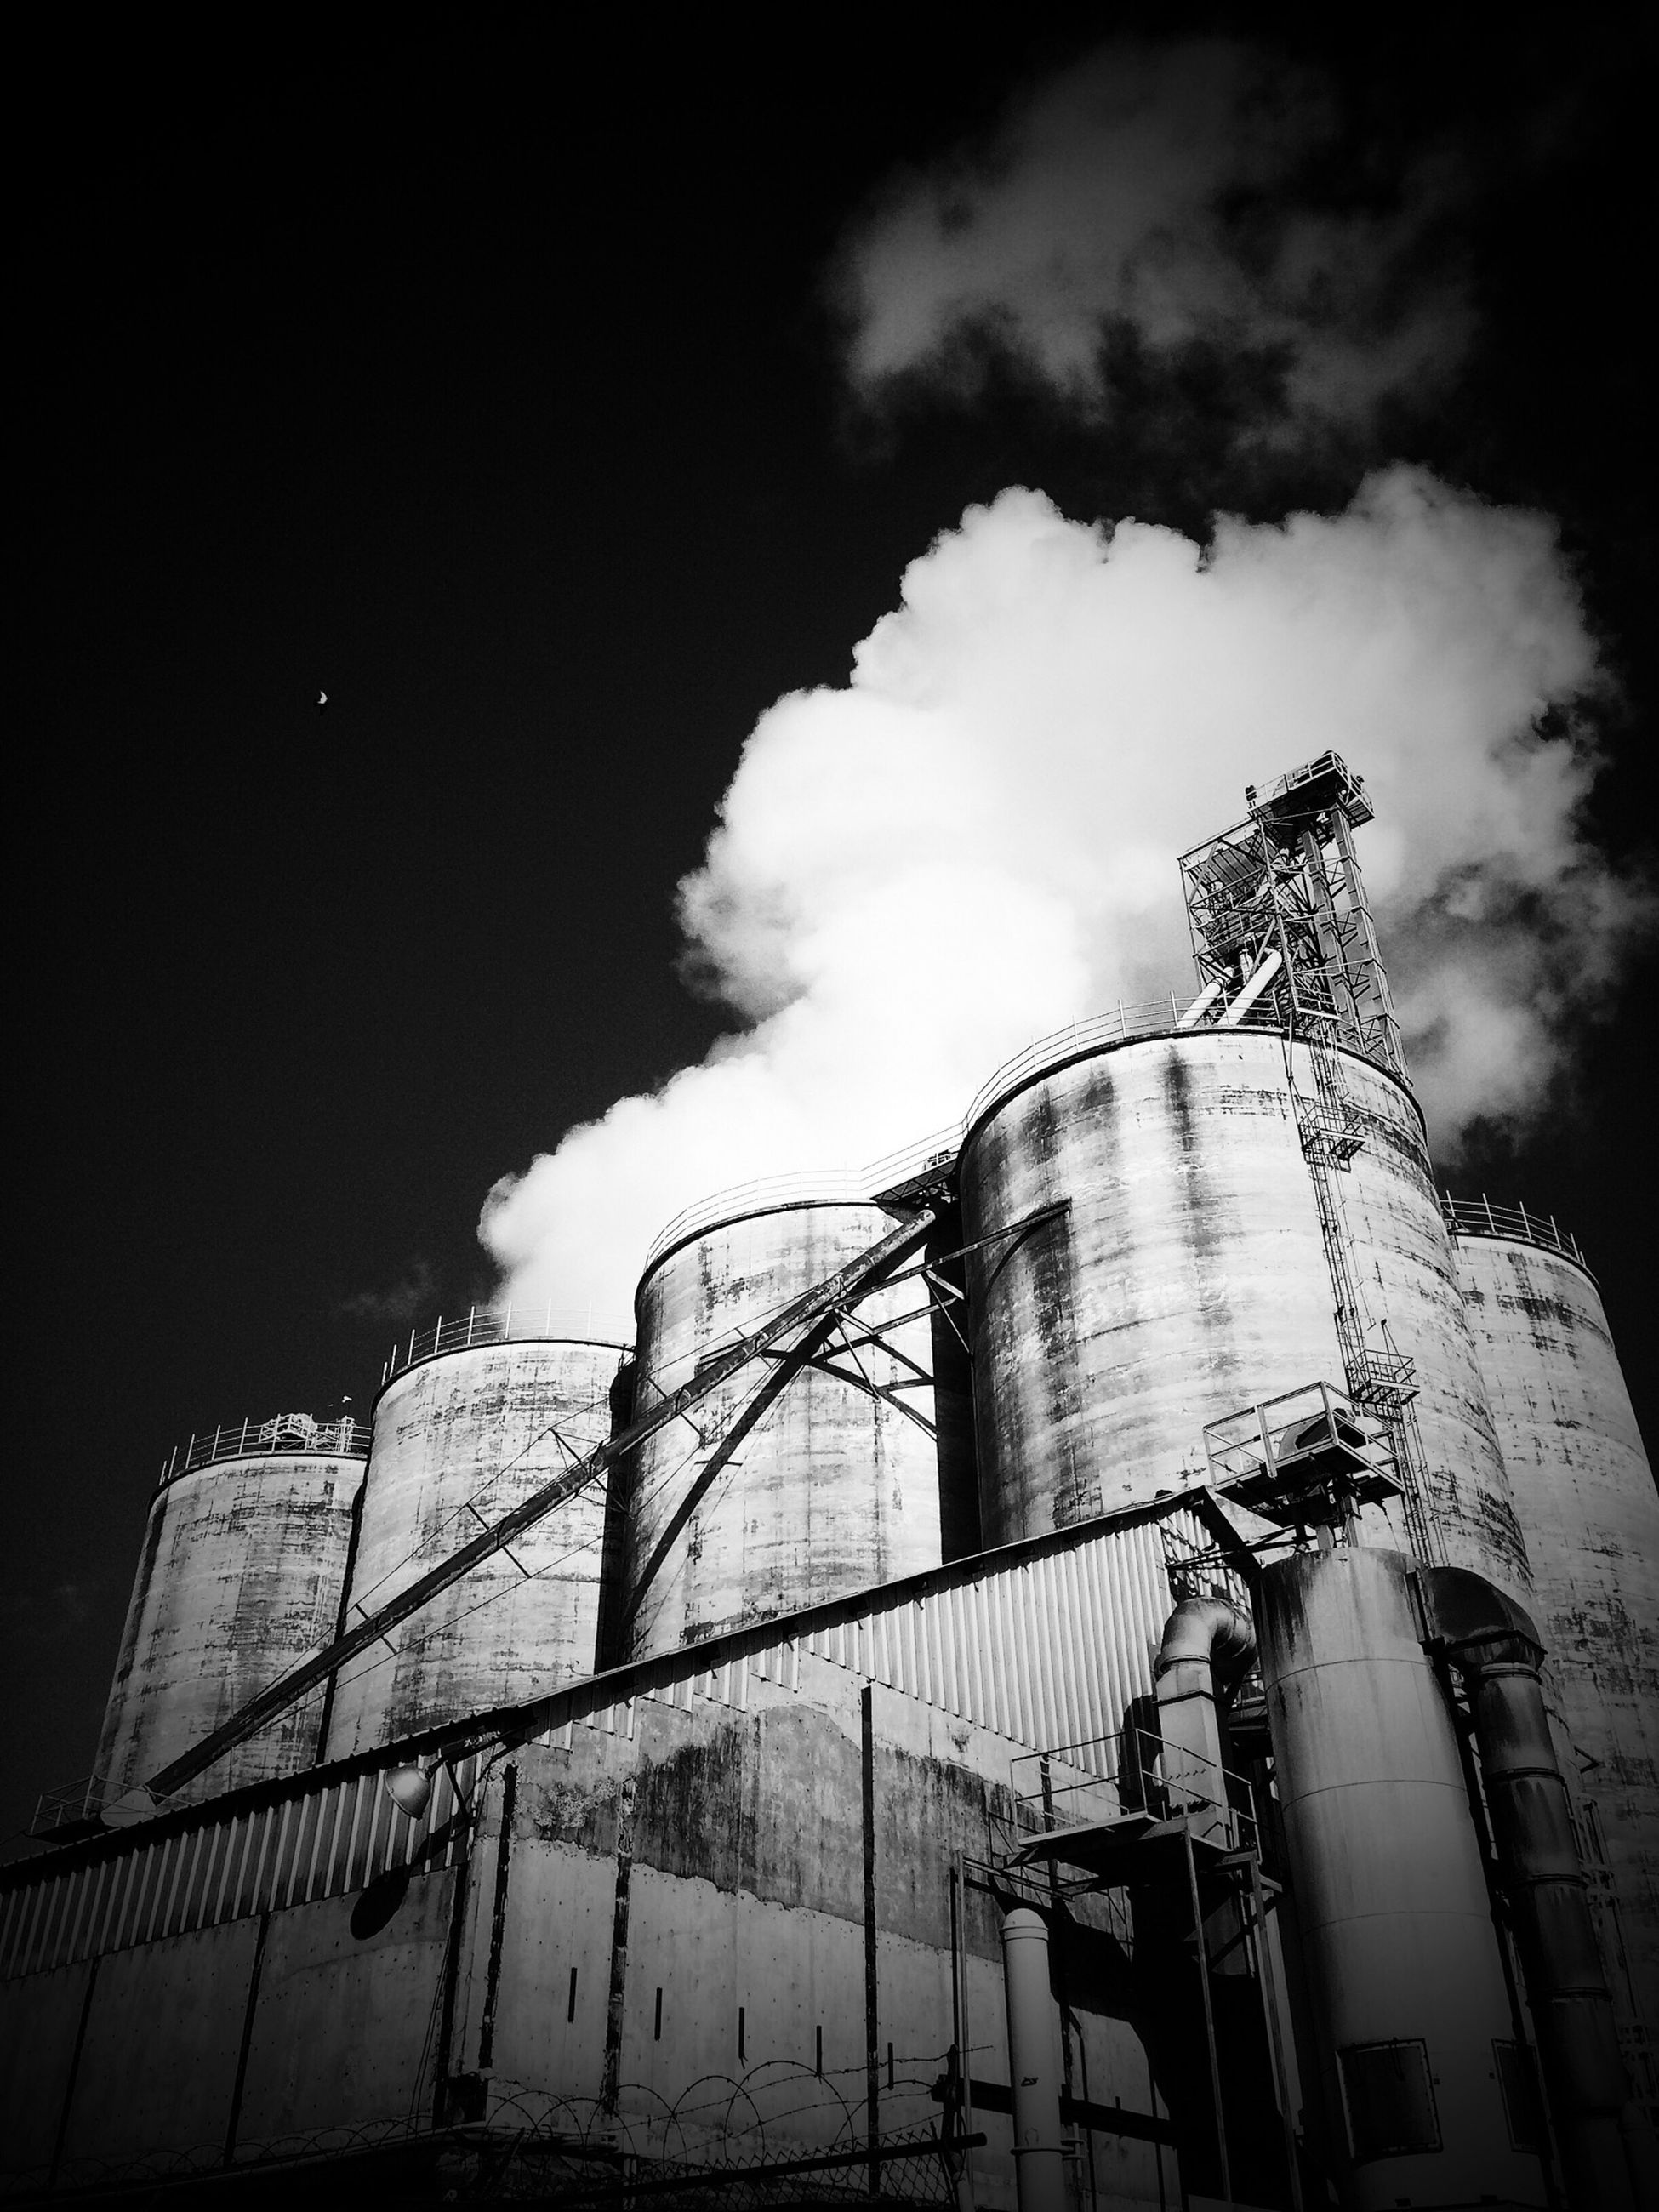 architecture, built structure, building exterior, low angle view, sky, cloud - sky, cloudy, building, construction site, cloud, tower, factory, outdoors, industry, tall - high, development, day, no people, weather, metal